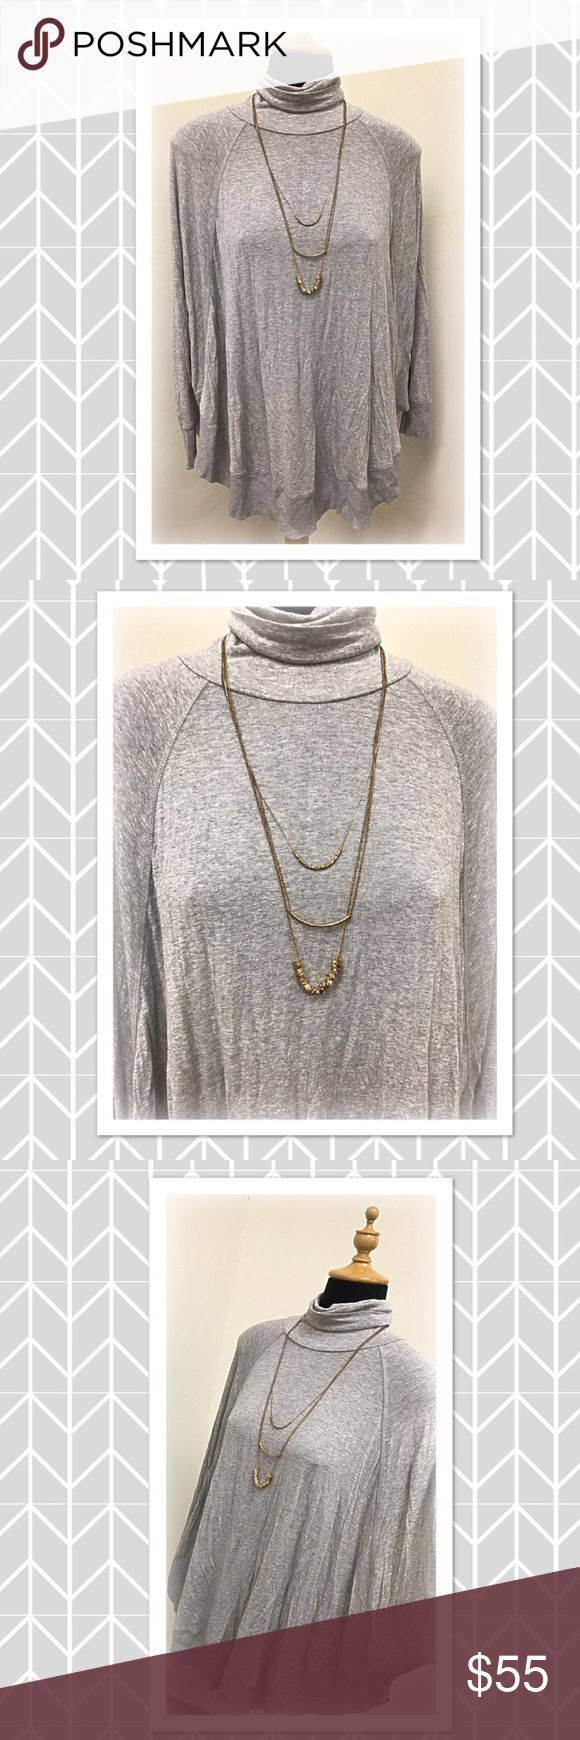 Gray long sleeve turtleneck top Beautiful gray long sleeve turtleneck top. This is a gorgeous top and lightweight. It is extremely well made and very comfortable. Material content is 98% viscose and 2% spandex. Chelsea & Theodore Tops Blouses